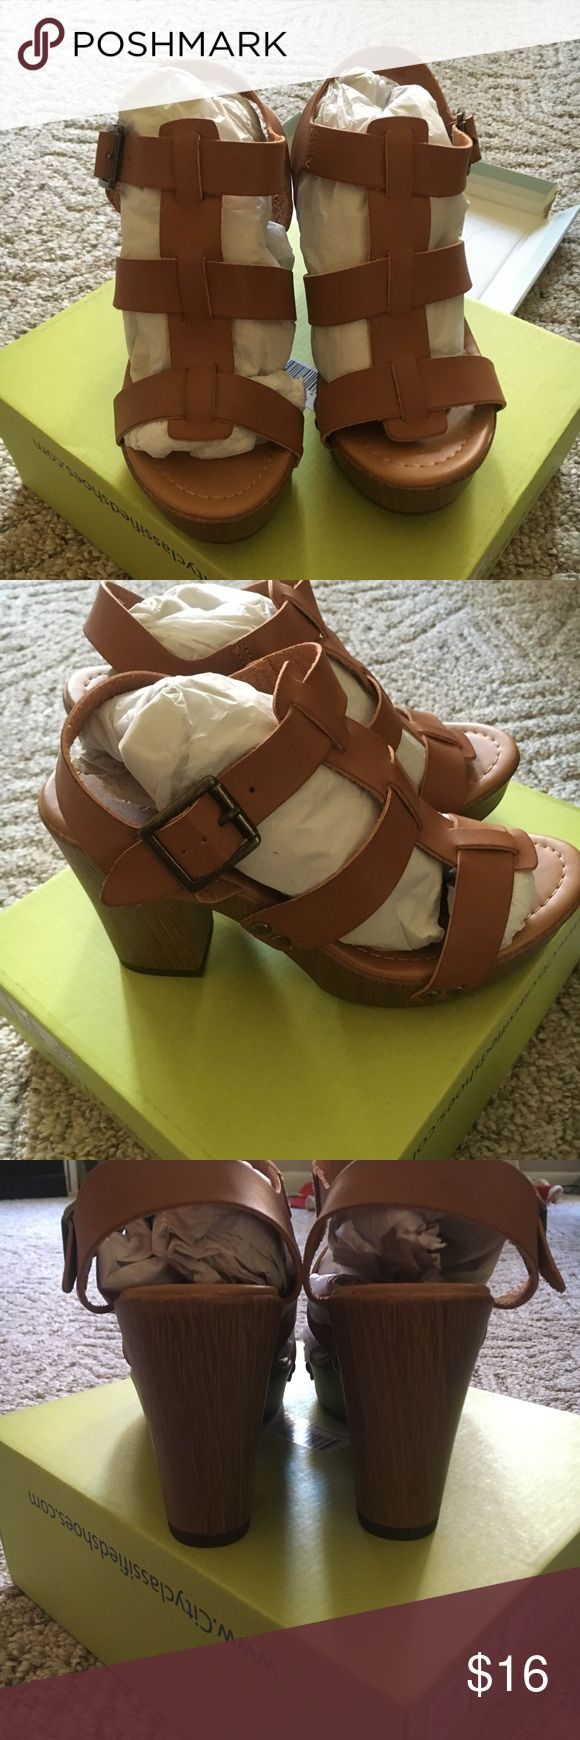 Brand new heels! Cute brown and tan chunky heels brand new!! Size 6.5 straight out of the box. Never worn because they're too small but I ordered the next size up and they're super comfortable I wore them to my graduation party! Bought from tillys Tilly's Shoes Heels